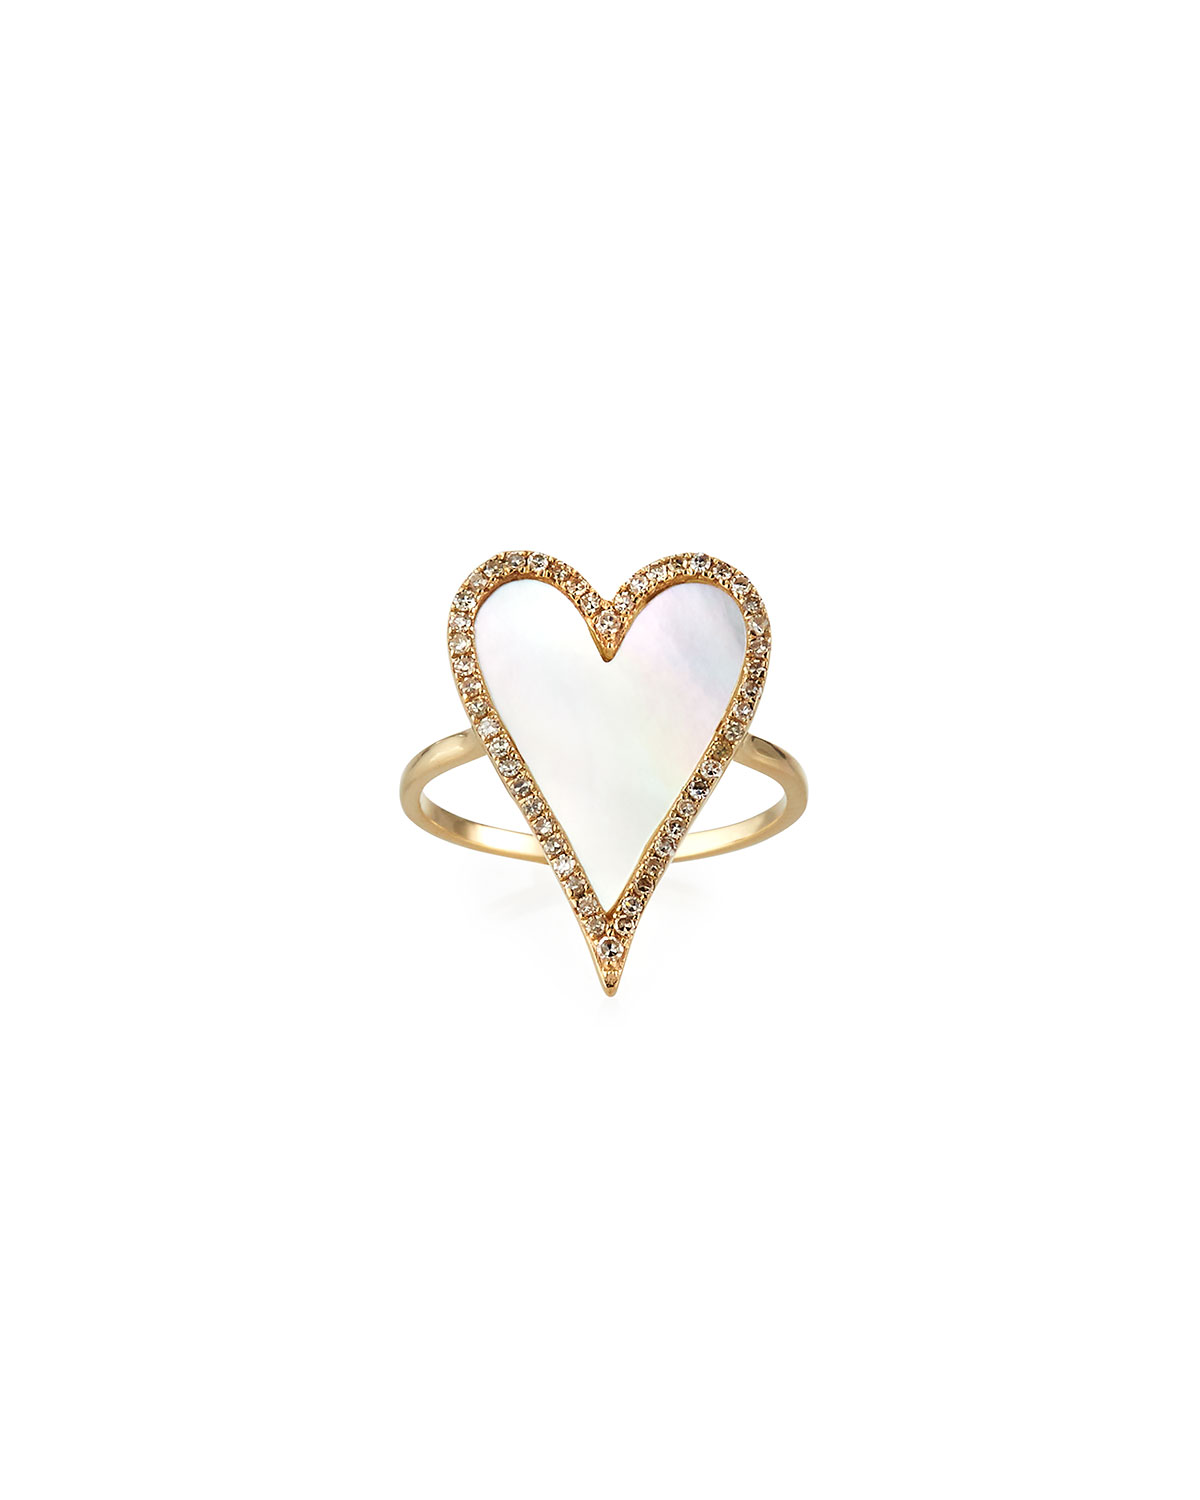 Muse Mother-of-Pearl Heart Ring with Diamonds